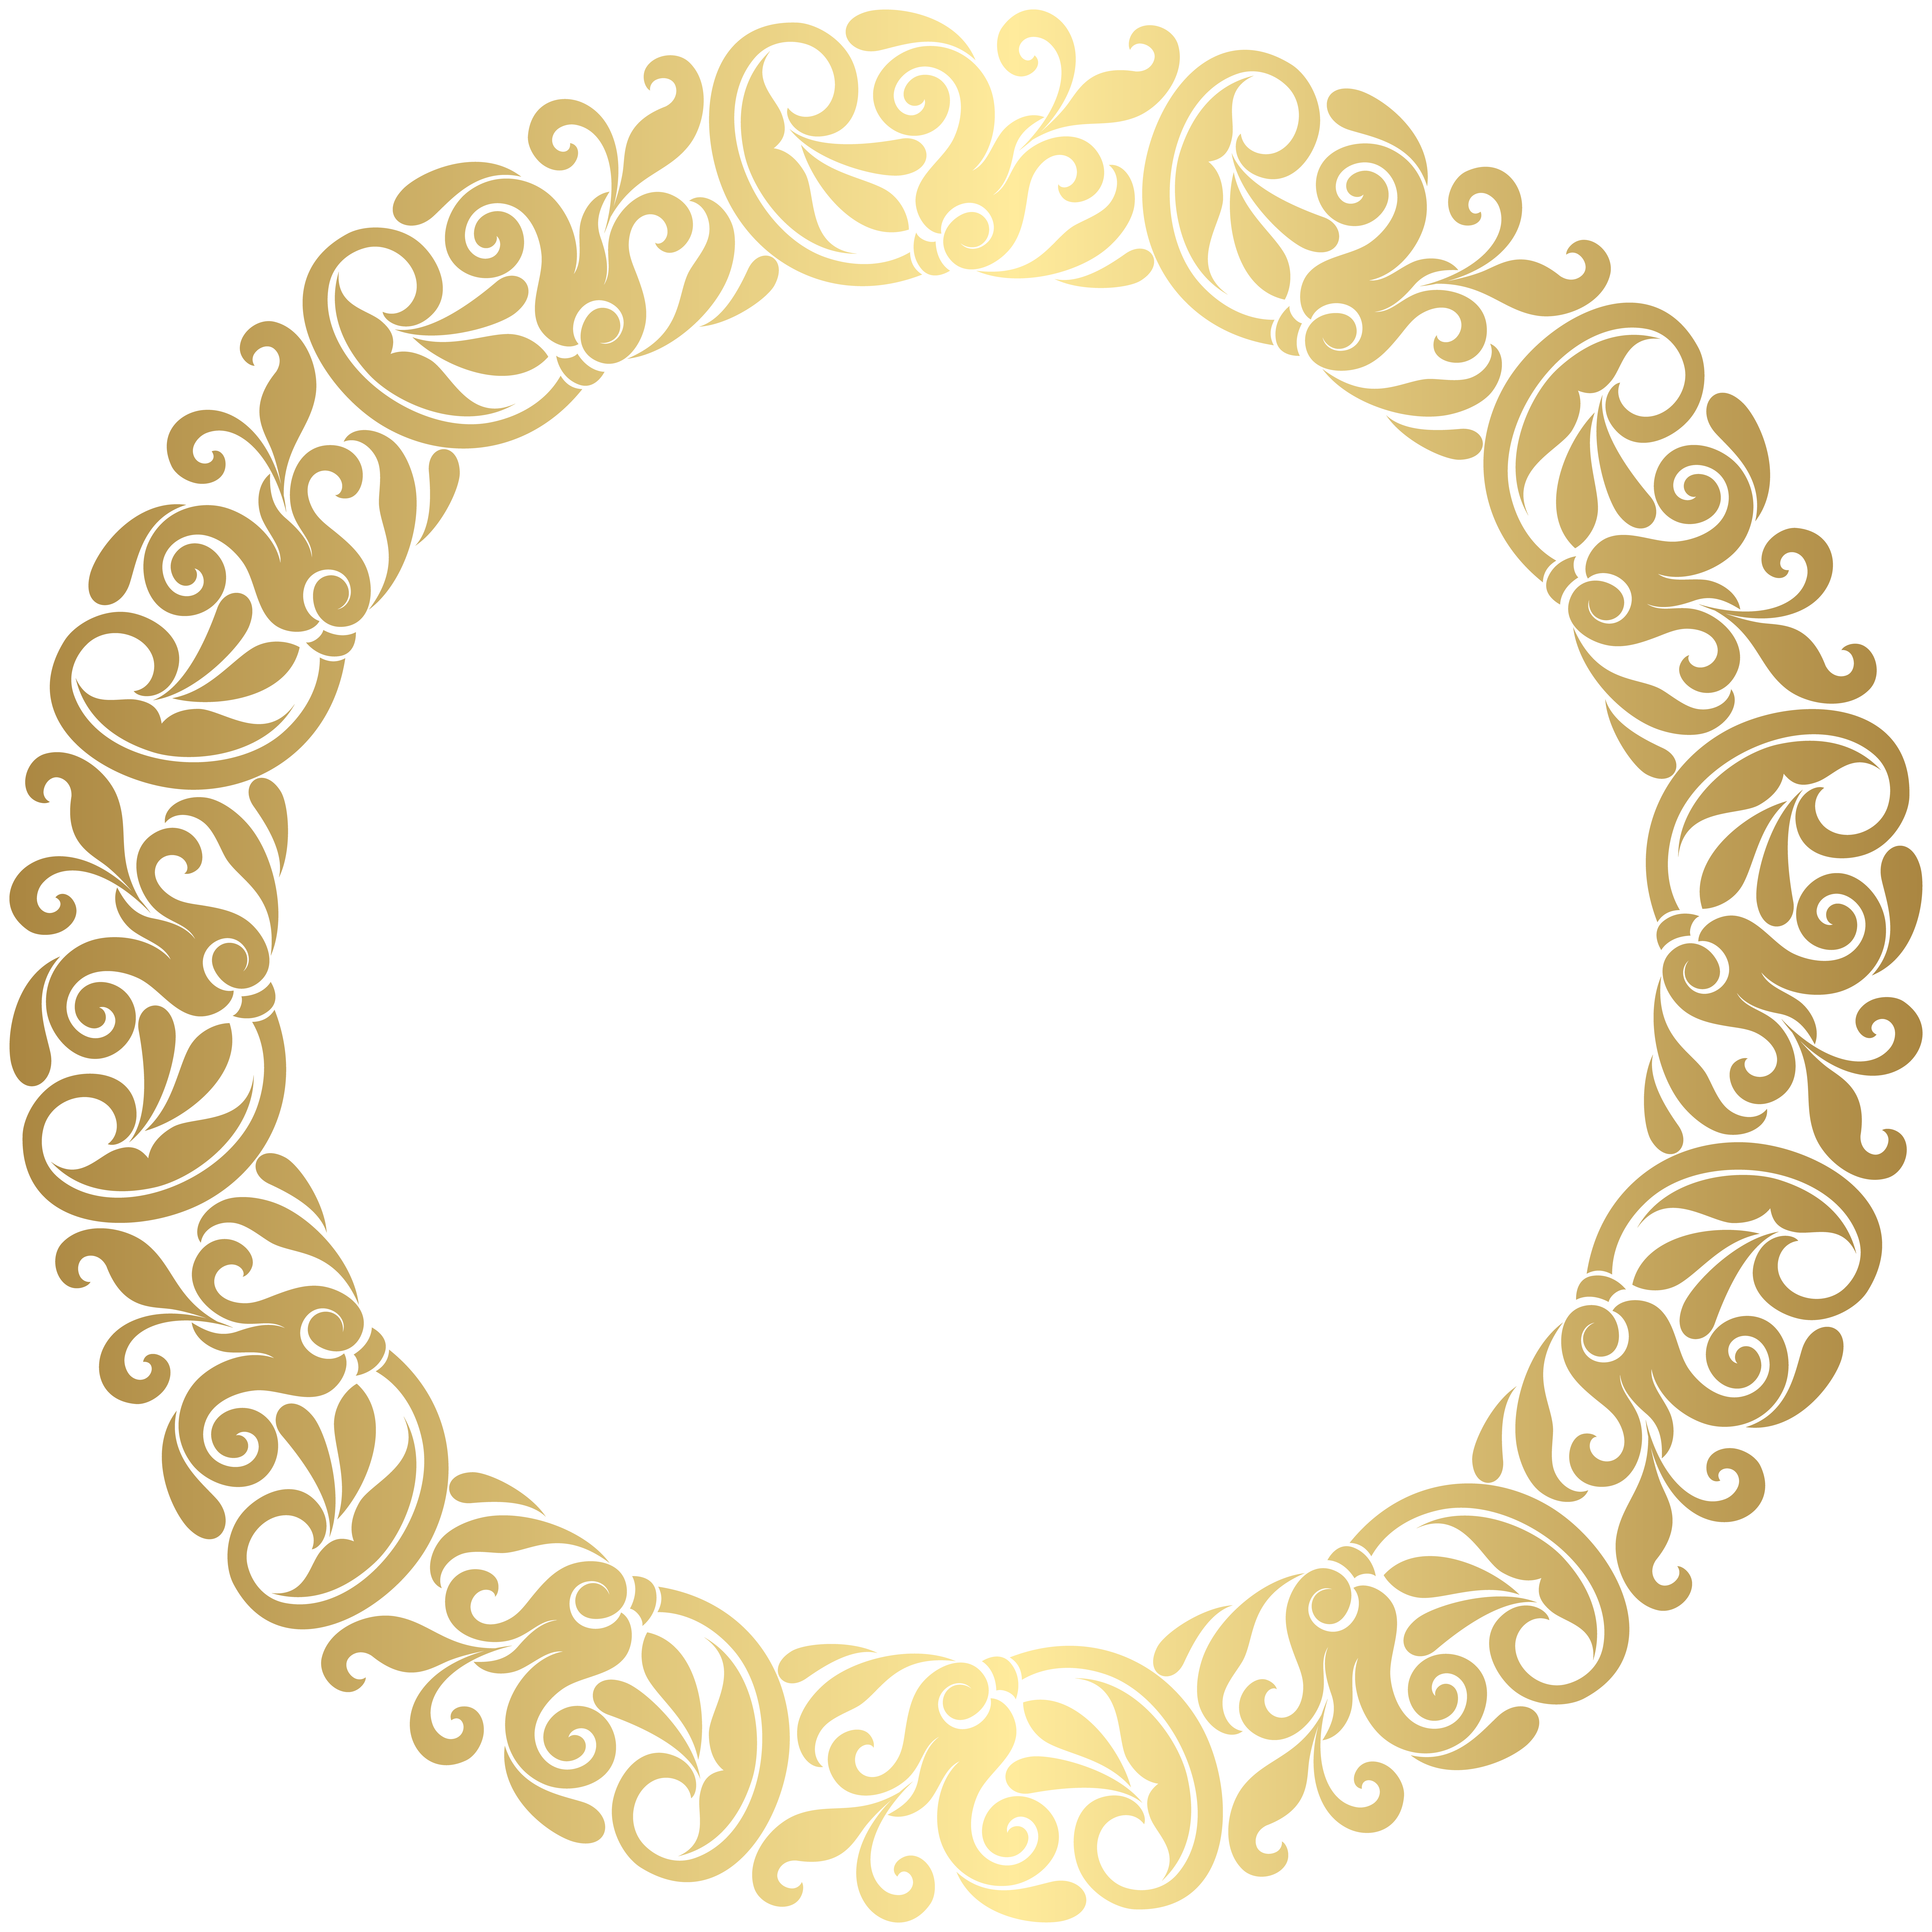 Gold Round Border Frame Png Clip Art Gallery Yopriceville High Quality Images And Transparent Png Free Gold Picture Frames Gold Circle Frames Round Border